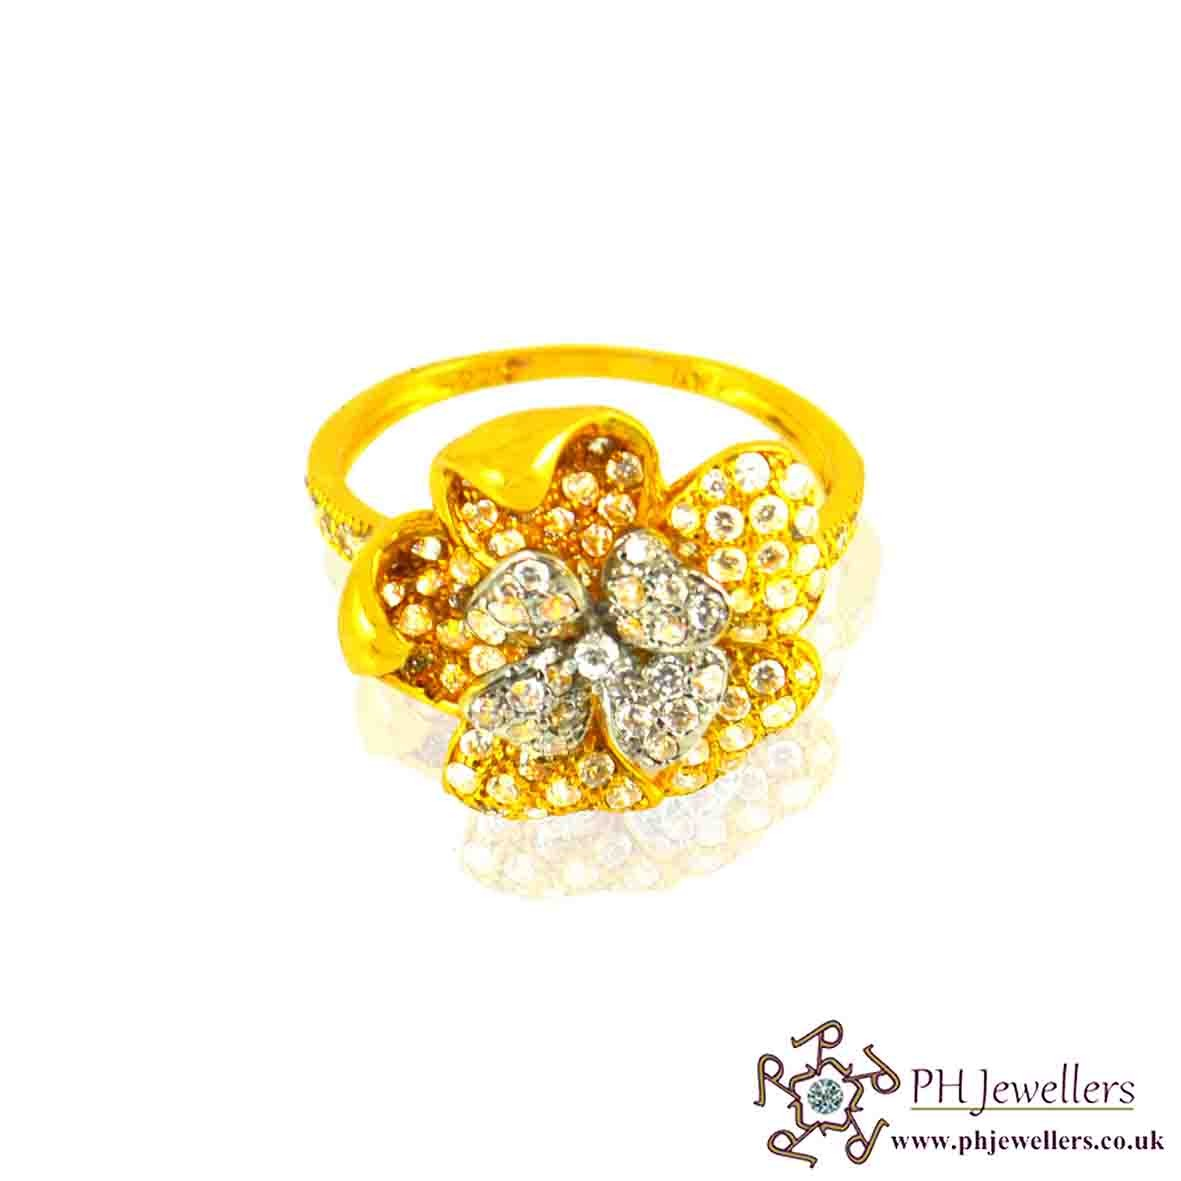 22ct 916 Hallmark Yellow Gold Flower Rhodium Size M,N Ring CZ SR17